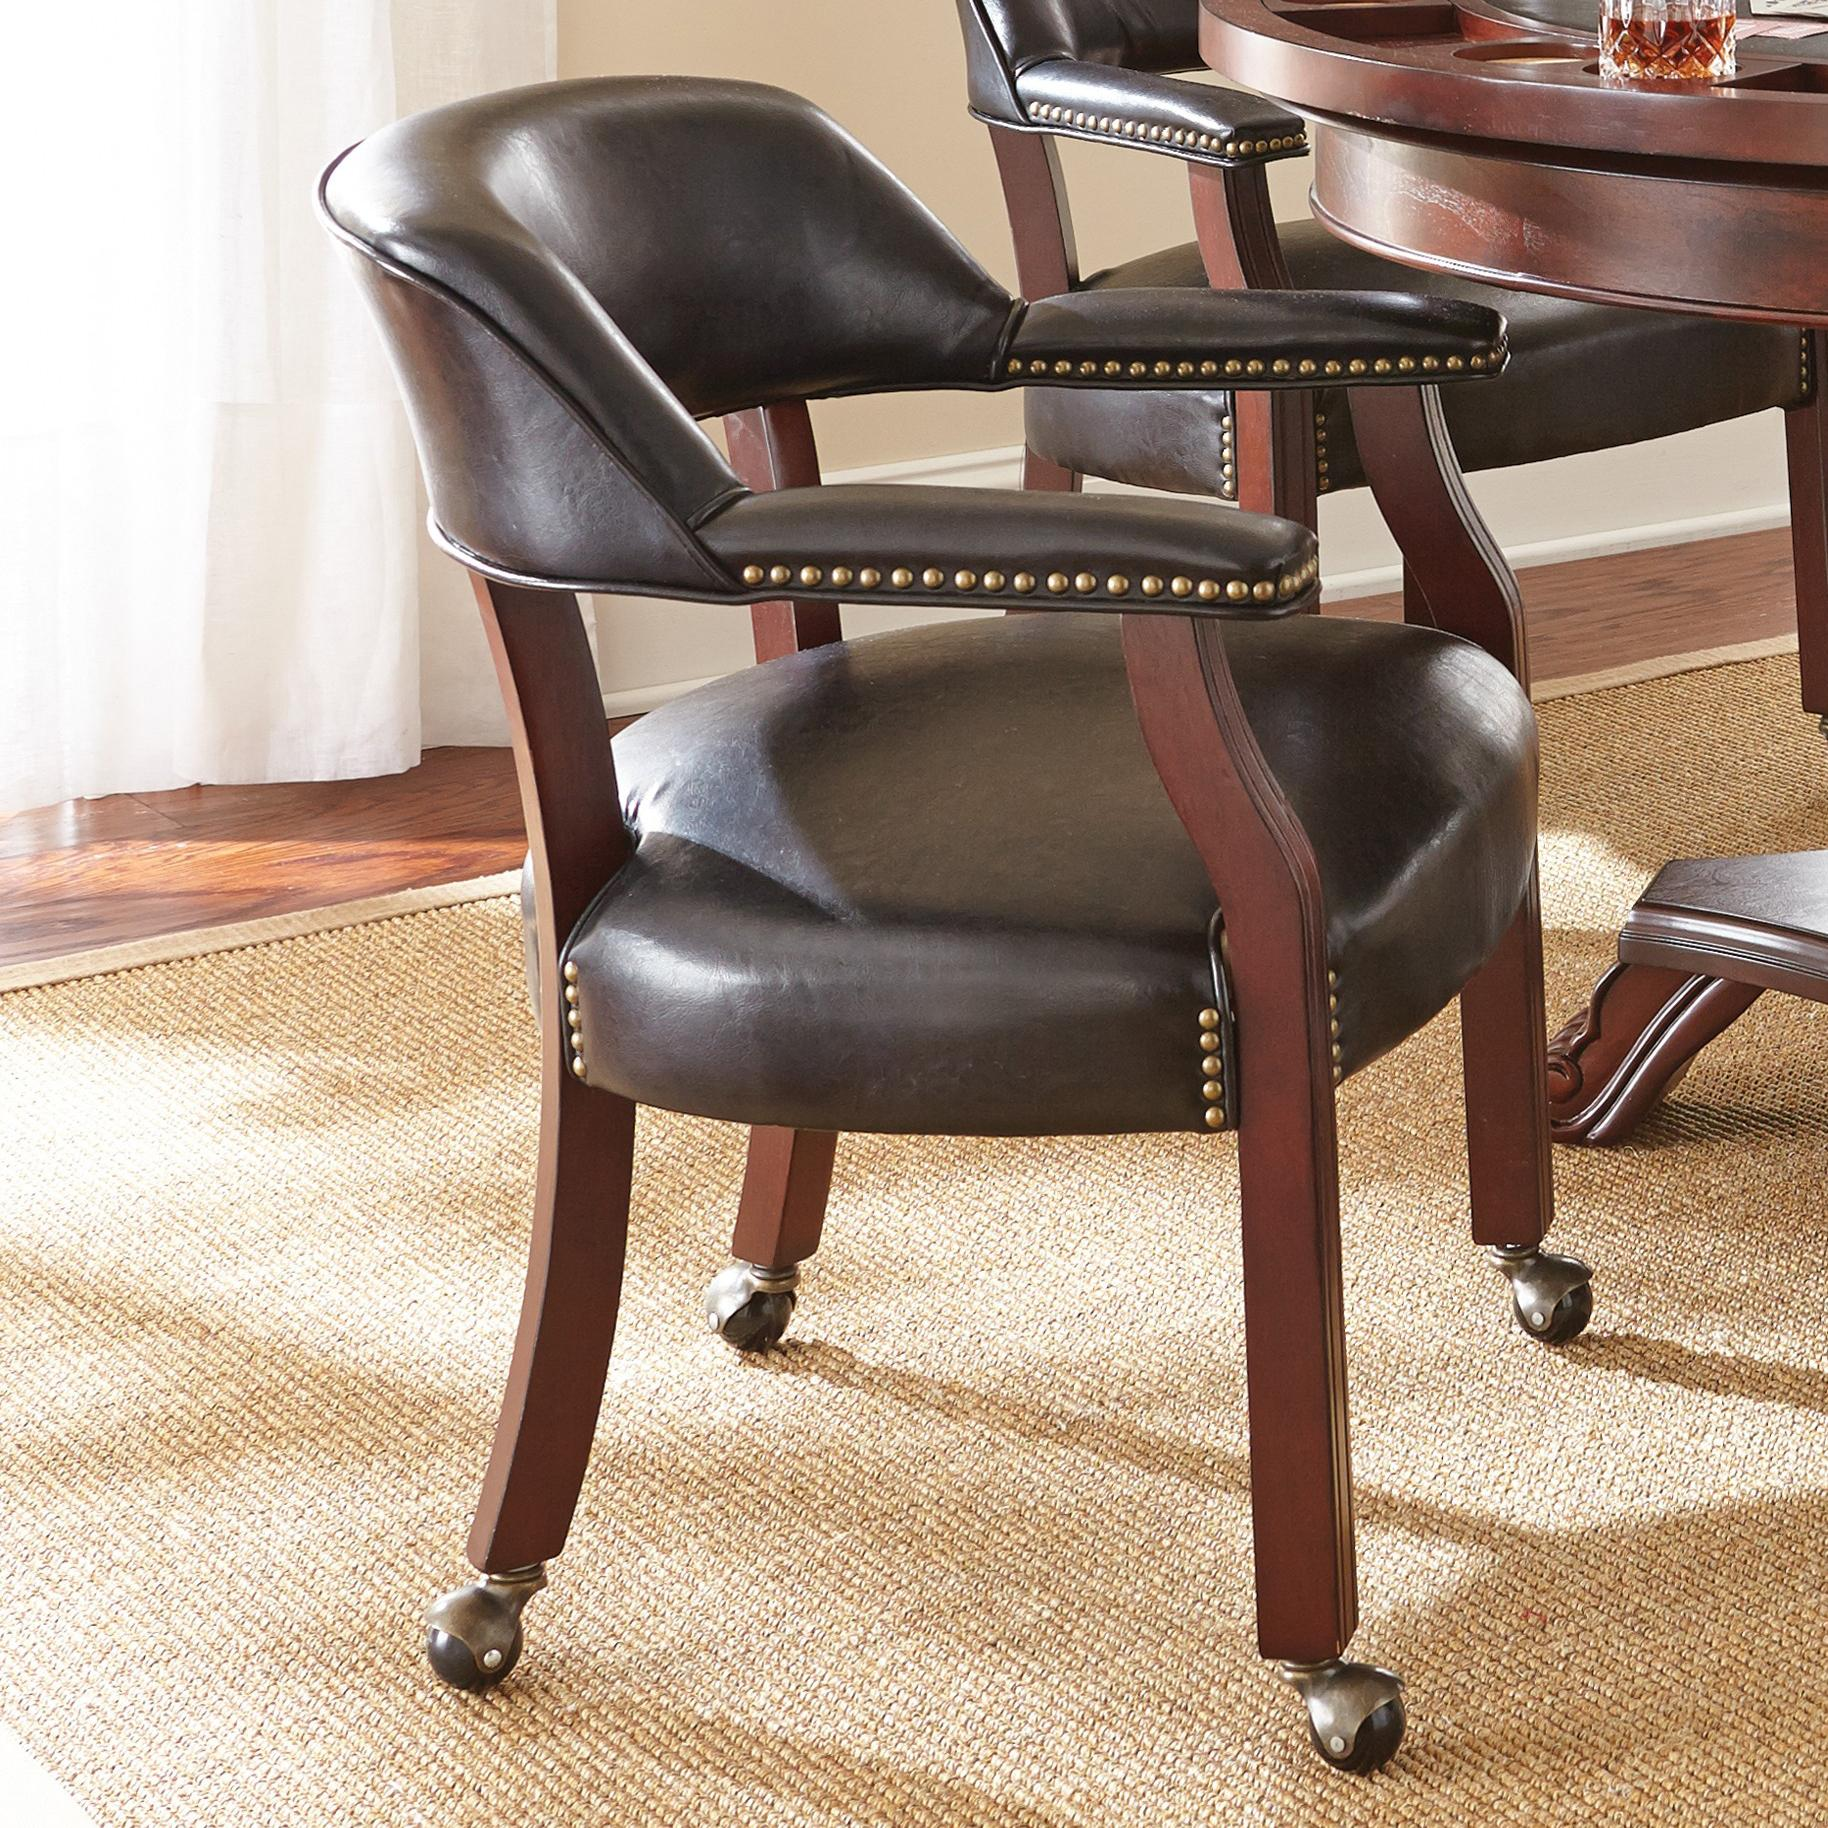 Tournament Tournament Arm Chair with Casters by Steve Silver at Walker's Furniture